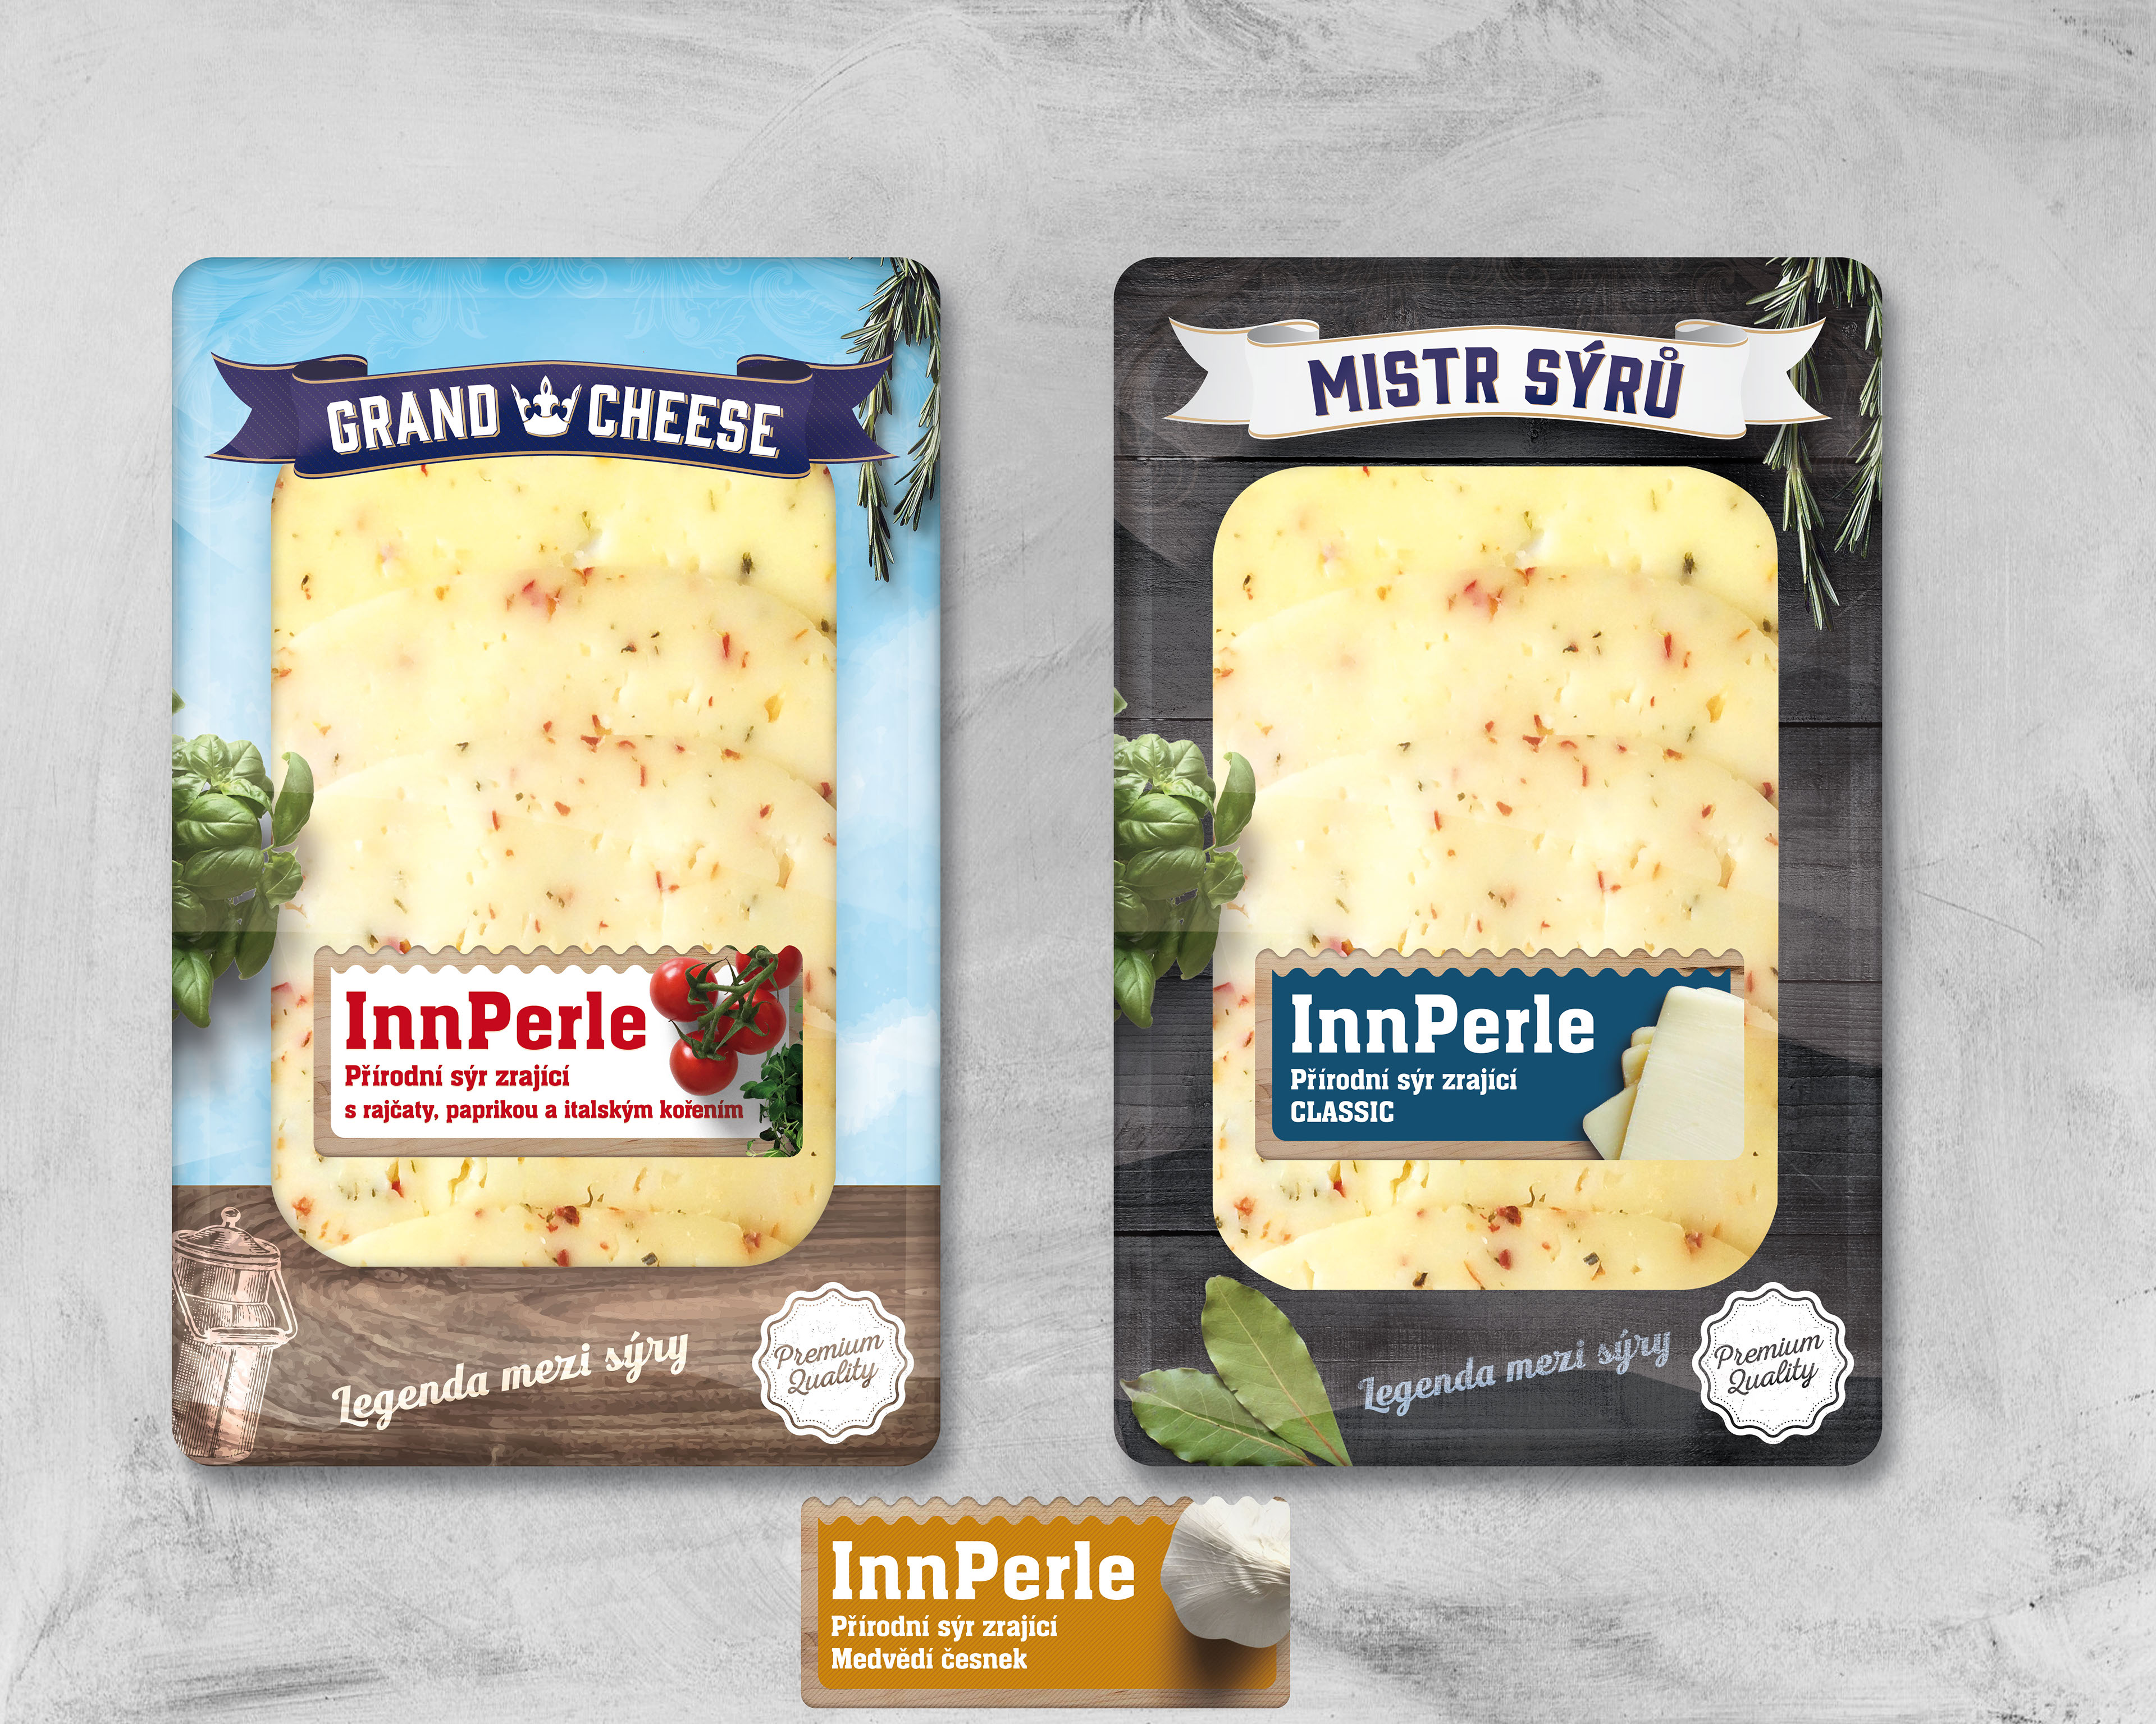 Packaging for New Cheese Brand